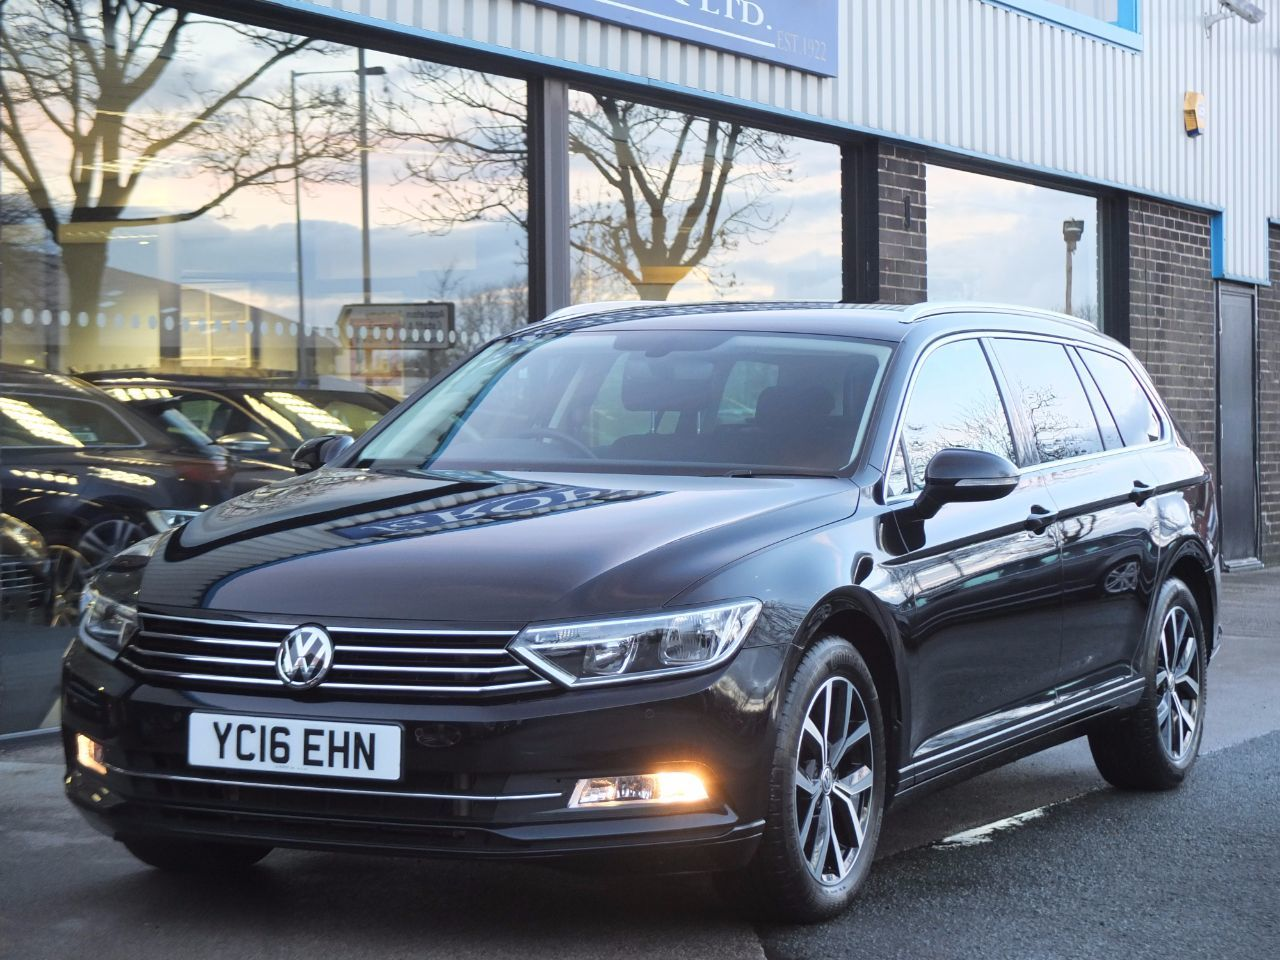 Volkswagen Passat 2.0 TDI SE Business Estate DSG Estate Diesel Deep Black MetallicVolkswagen Passat 2.0 TDI SE Business Estate DSG Estate Diesel Deep Black Metallic at fa Roper Ltd Bradford